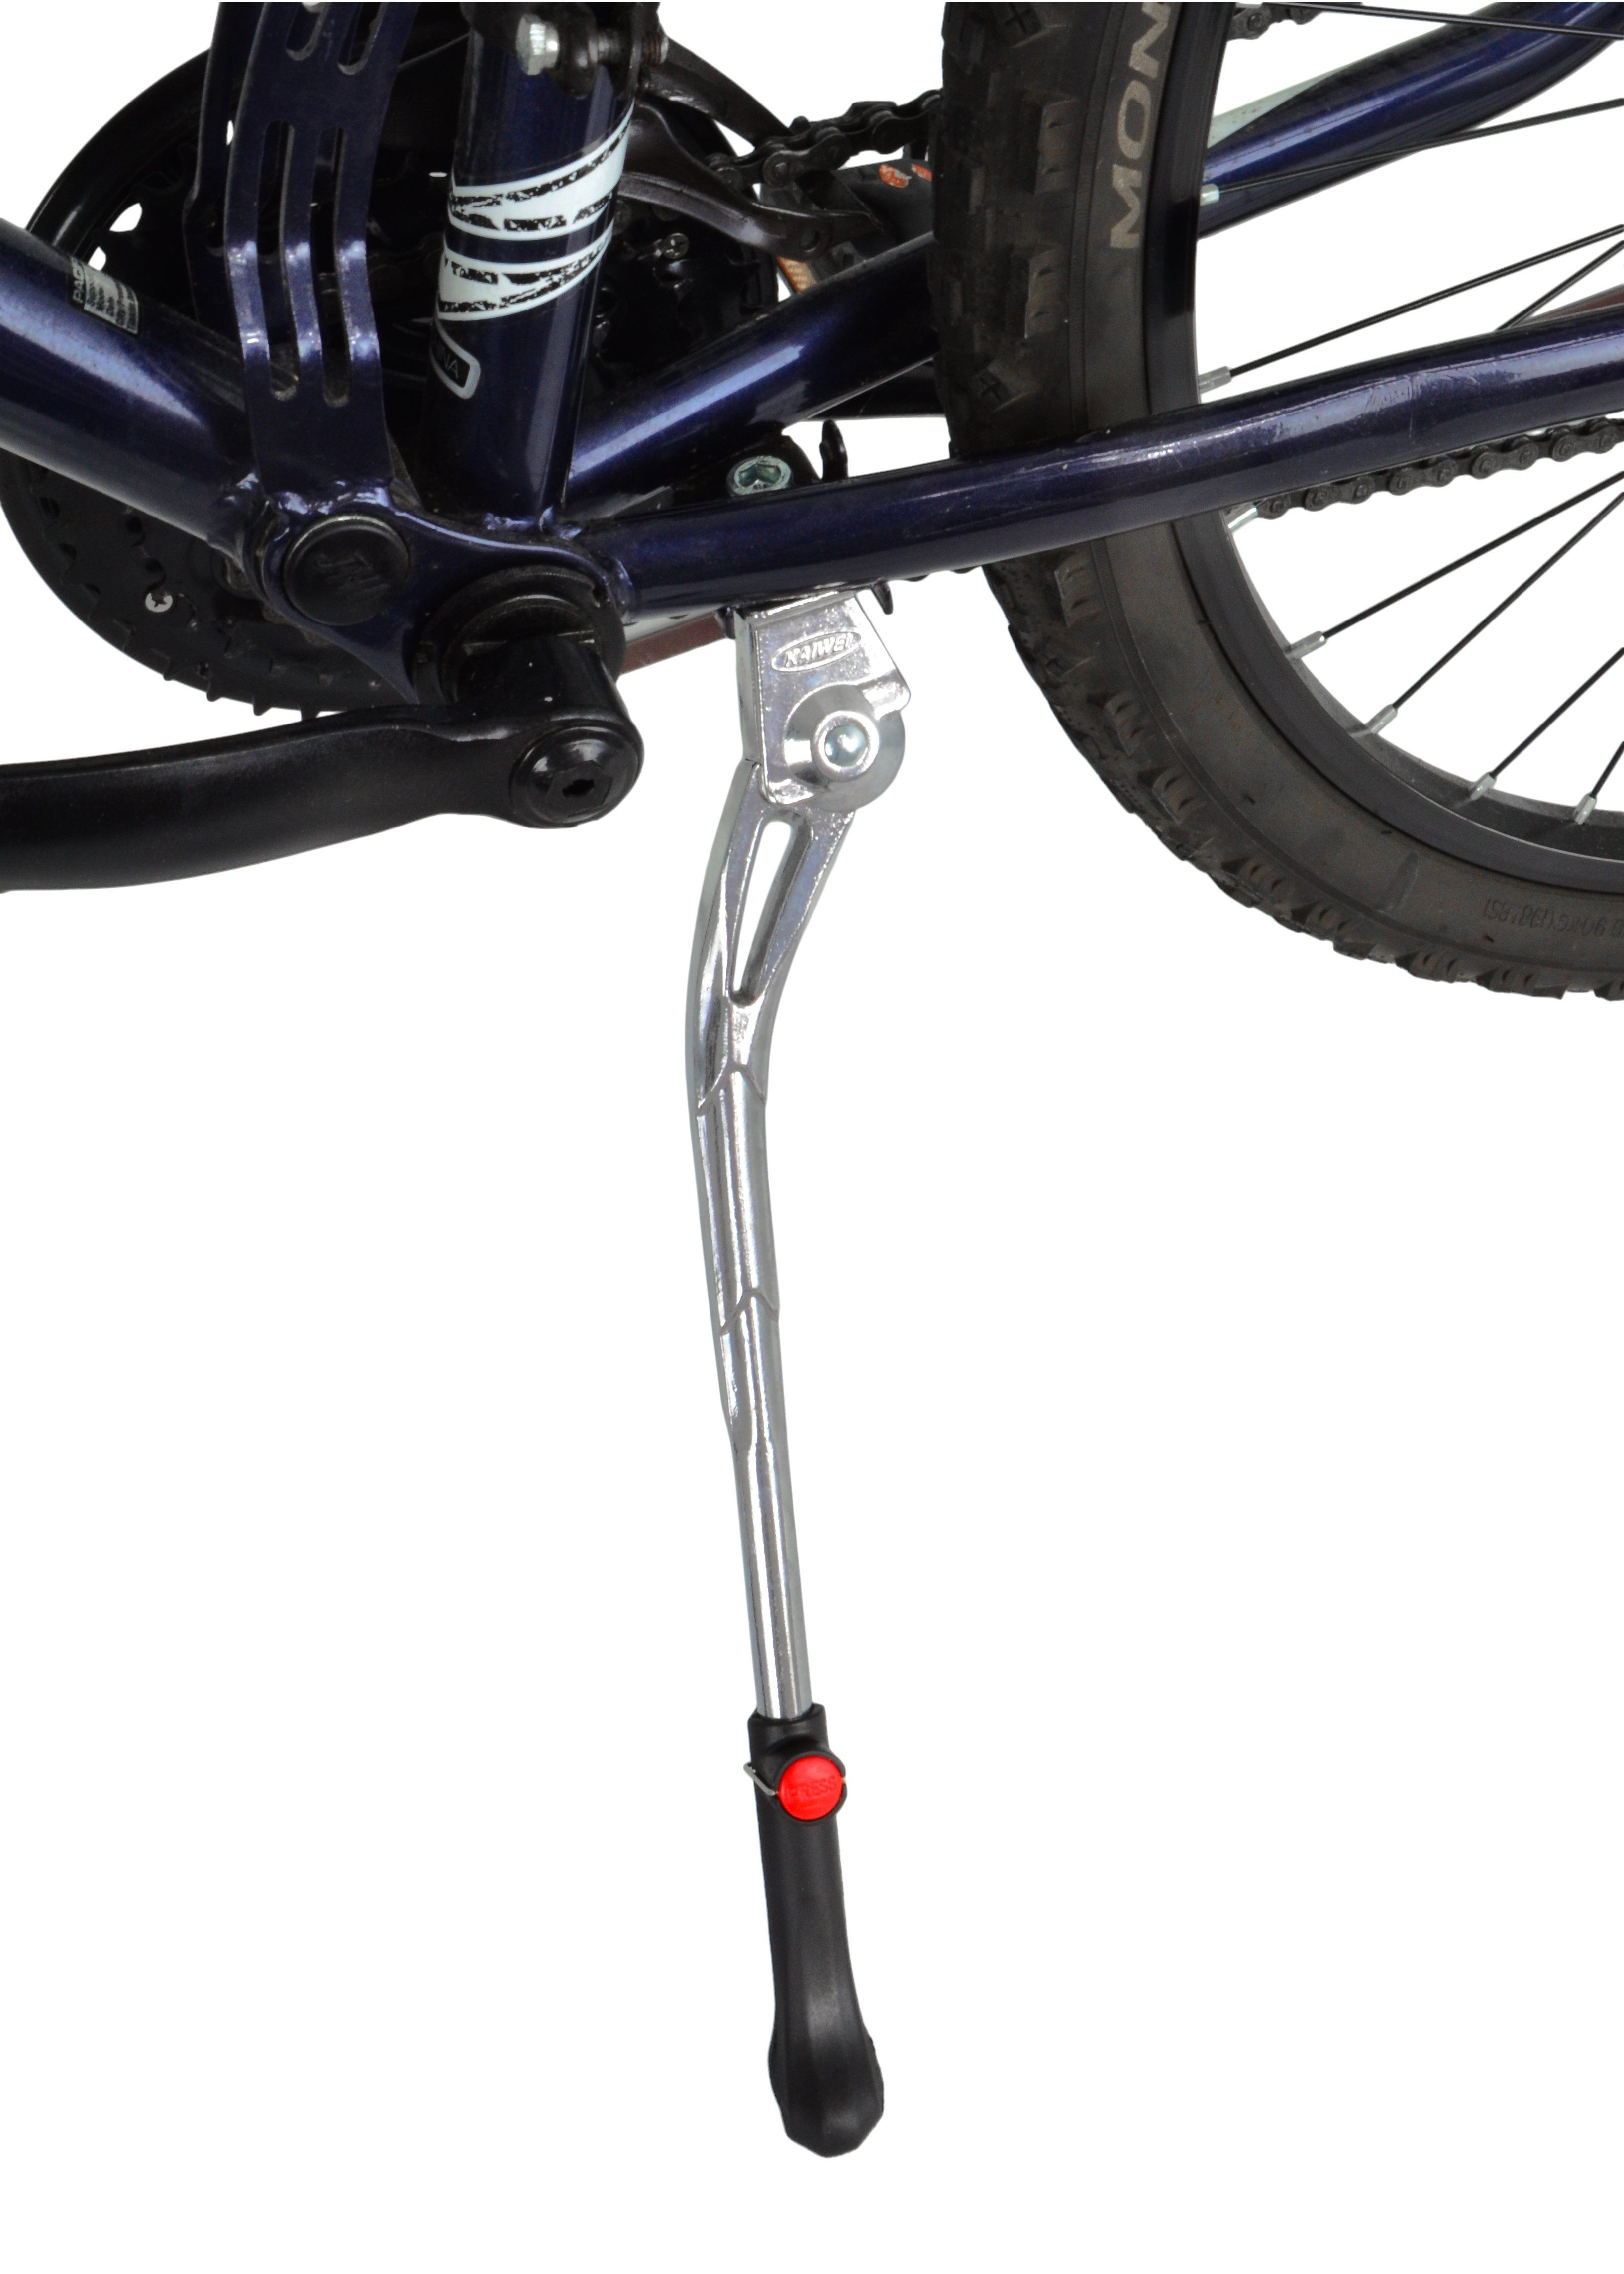 Bicycle Kickstand Center Mount Adjustable 24 28 Inches Bicycle